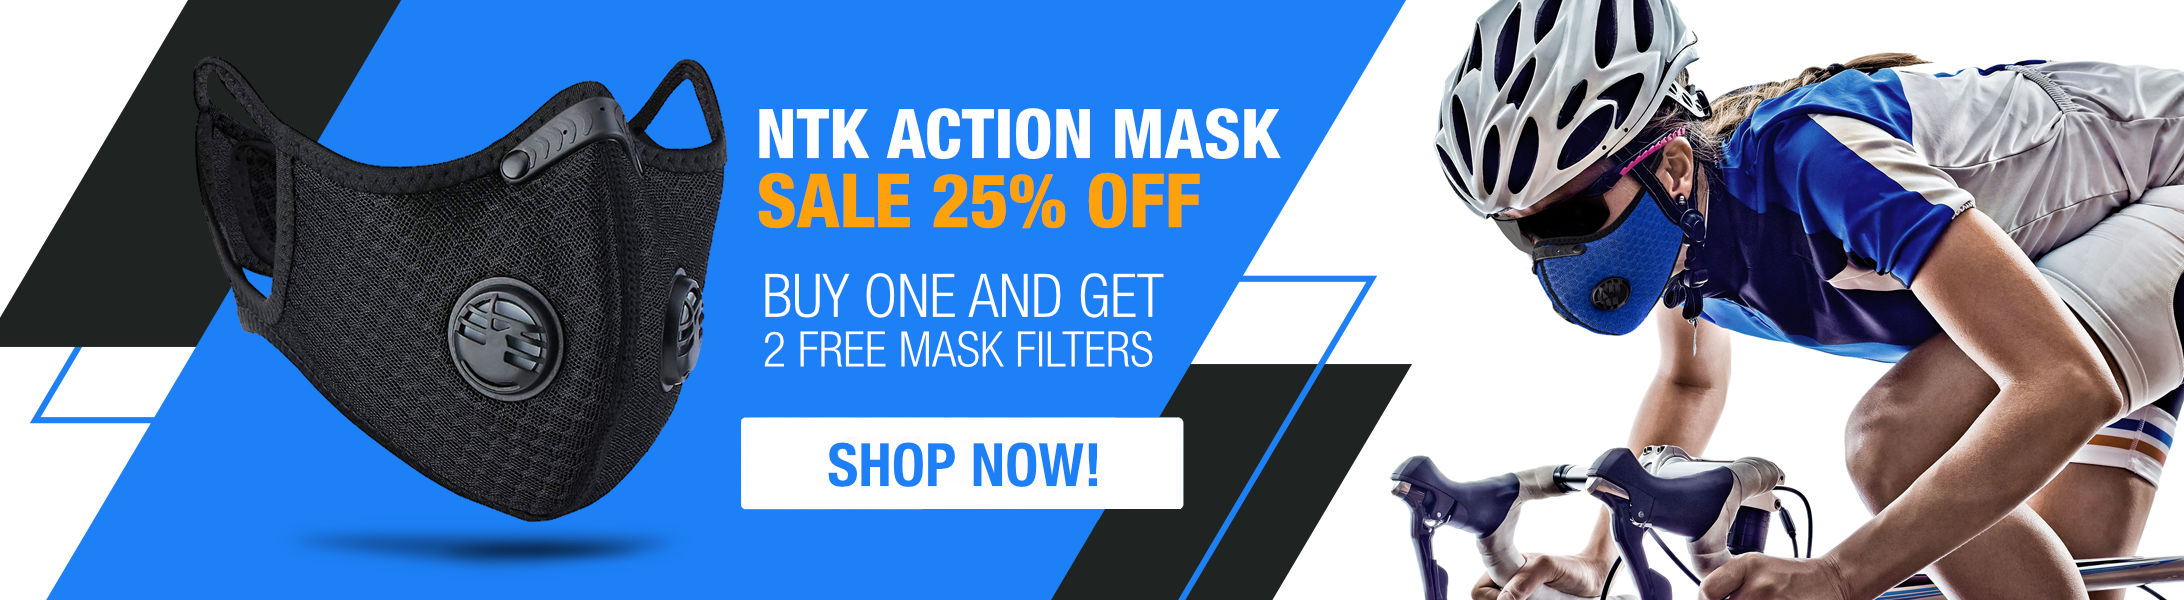 Special Promo 25% OFF! Action Mask